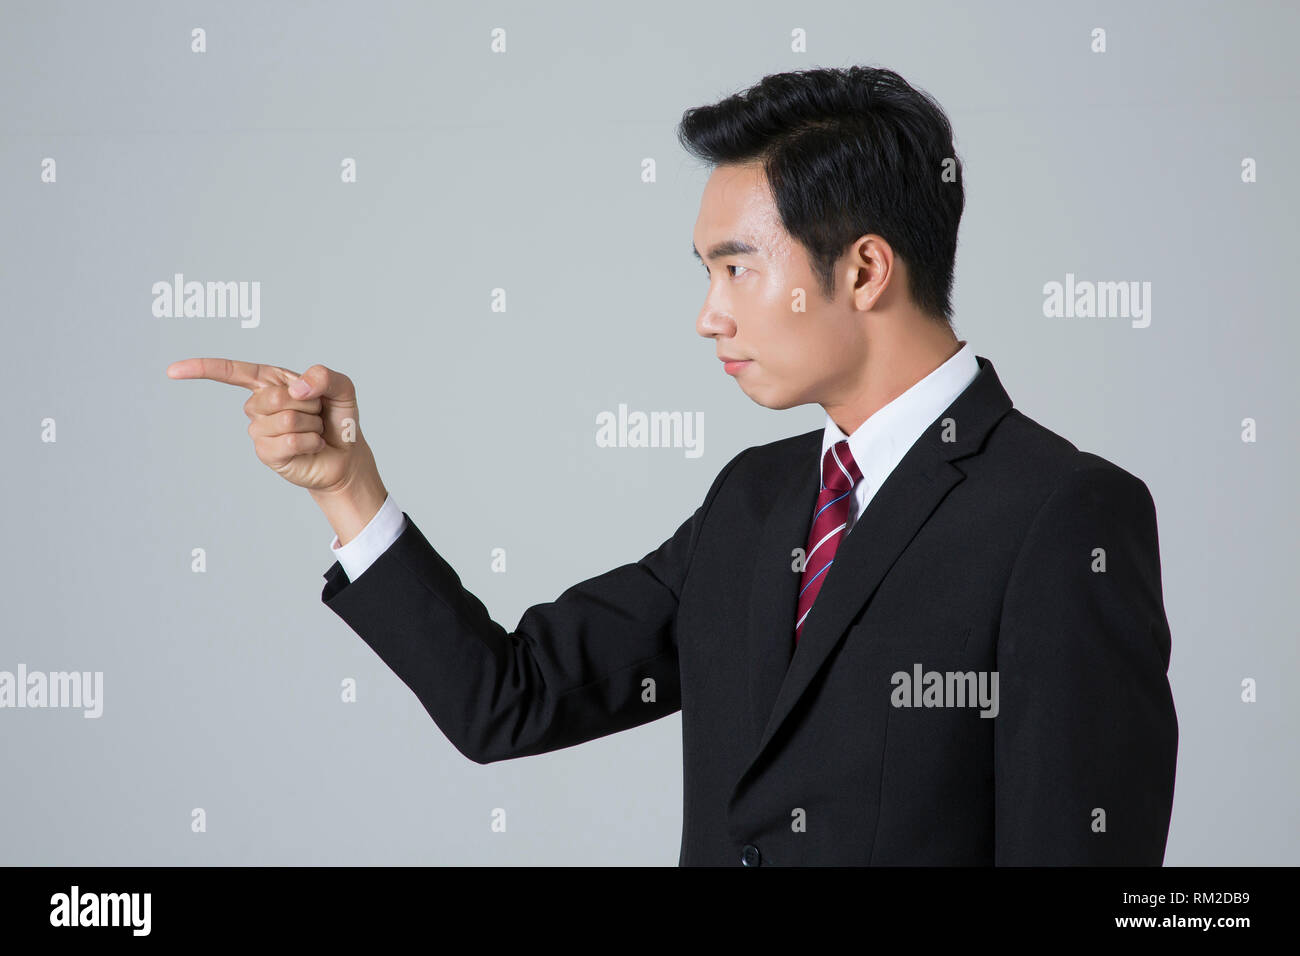 Young businessman concept photo. 071 - Stock Image